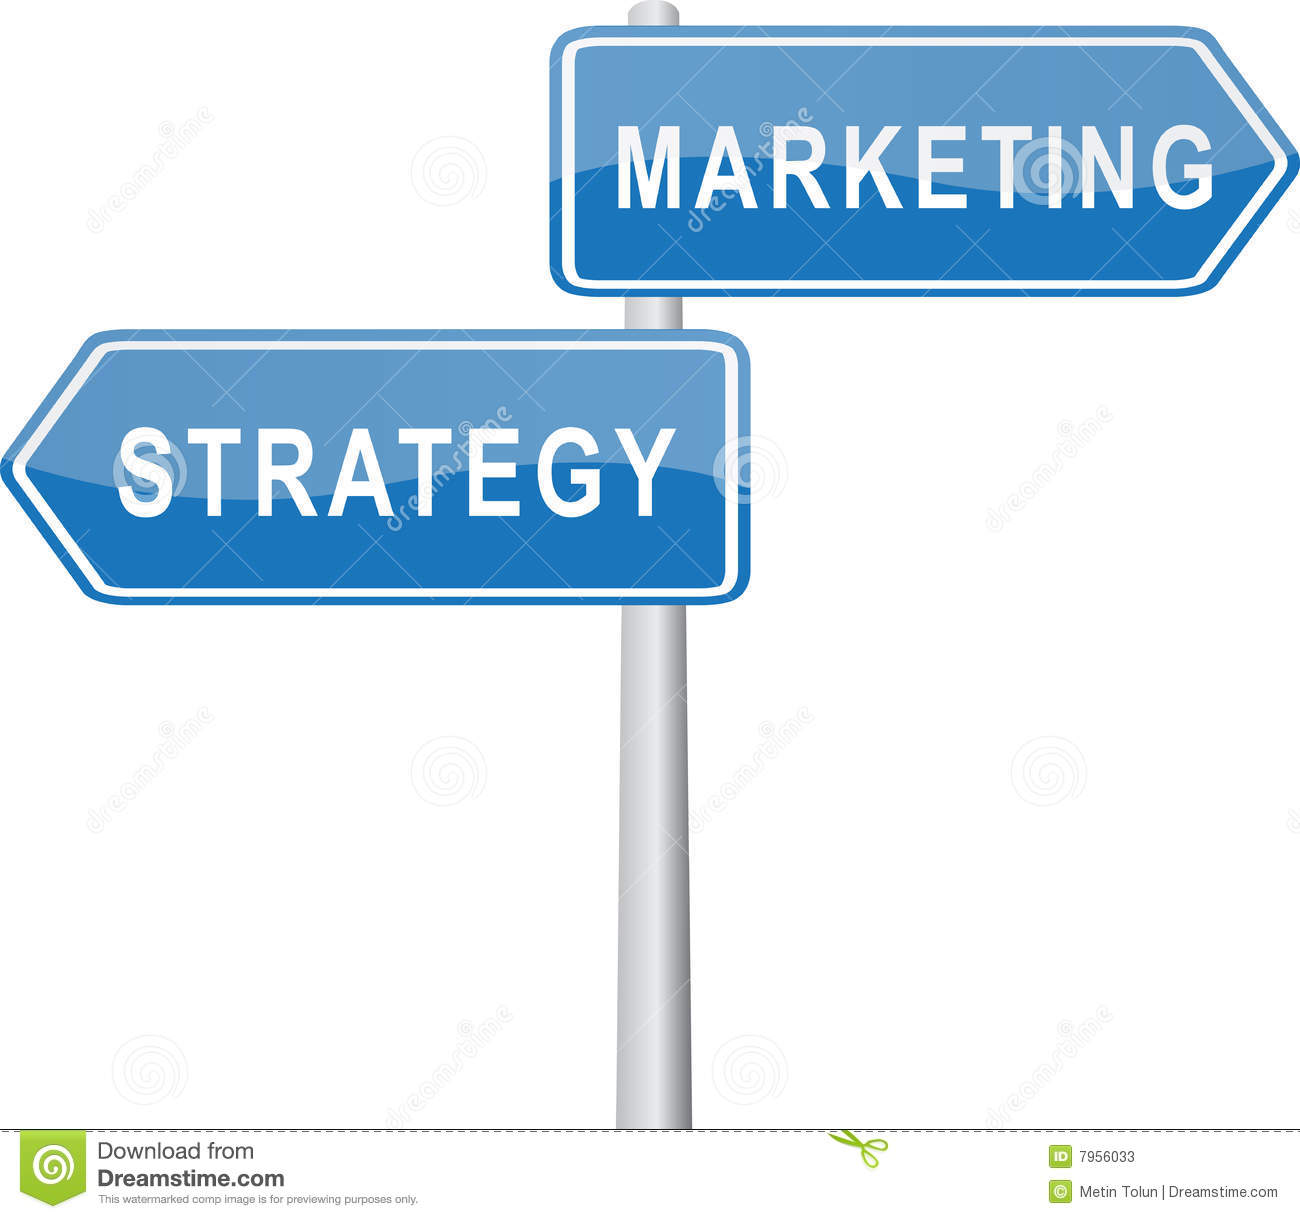 charity shop marketing strategy An example of a marketing plan spree marketing strategies general will introduce a new product, the innovative spree watch, using penetration pricing.